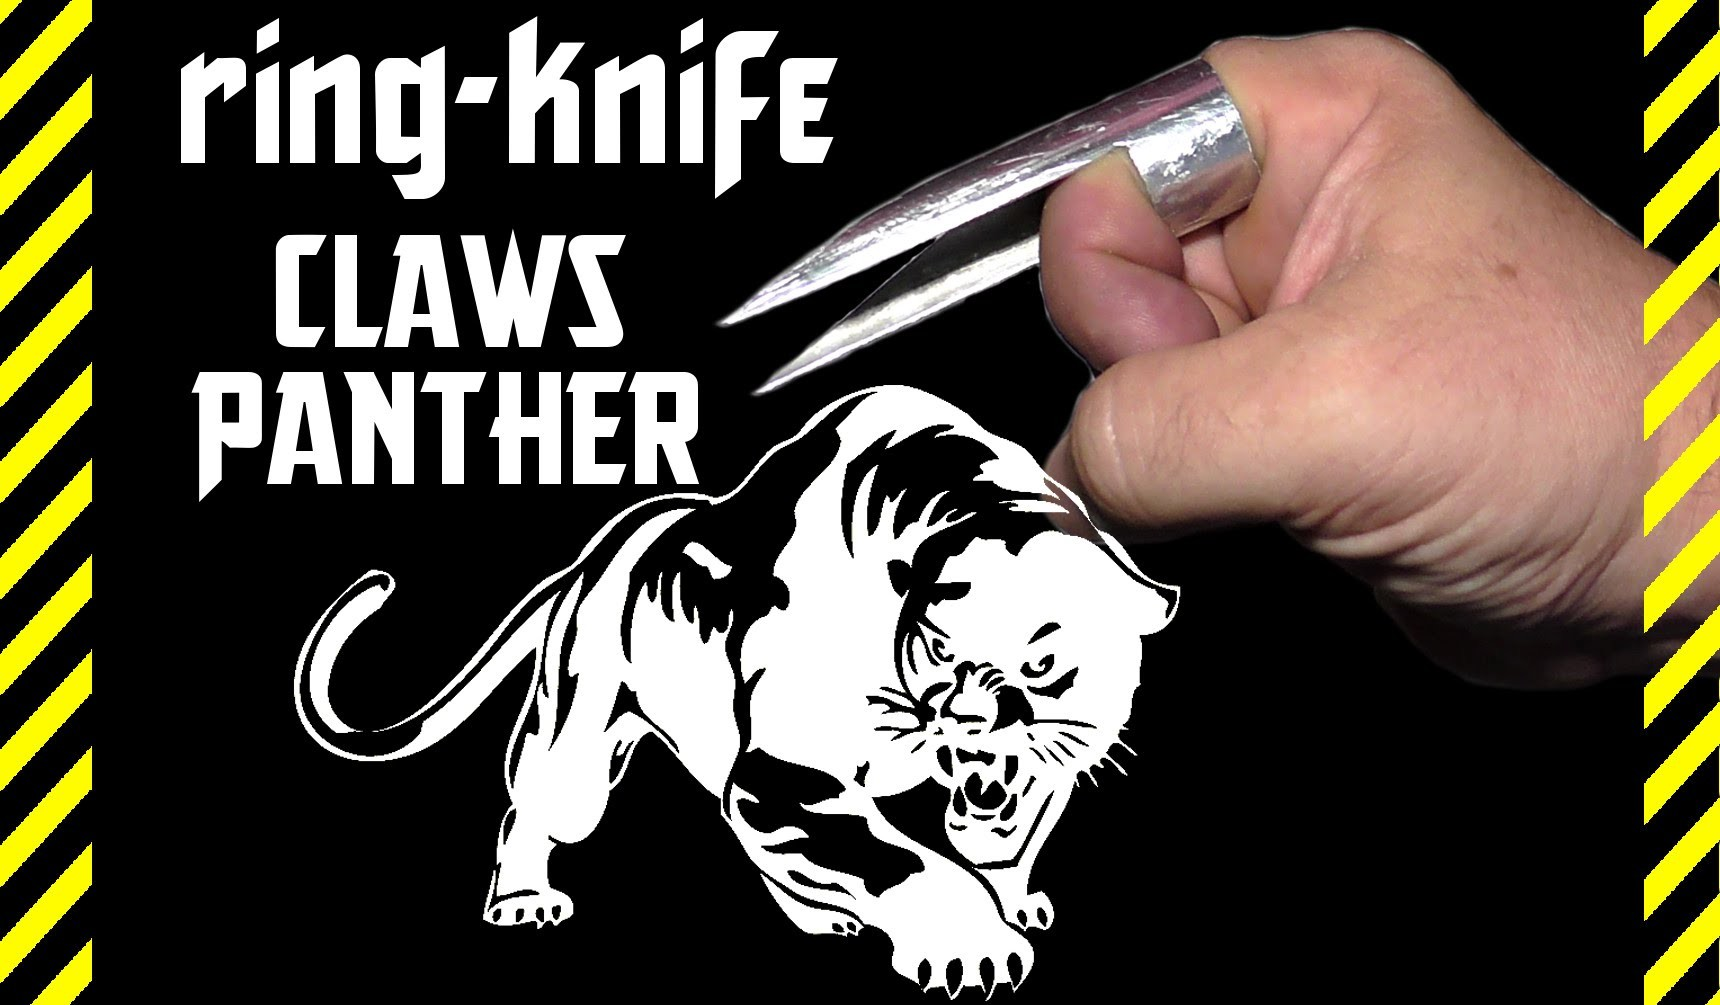 How to make a ring knife, dagger hidden CLAWS PANTHER  Deadly paw killer  Self defense and attack!